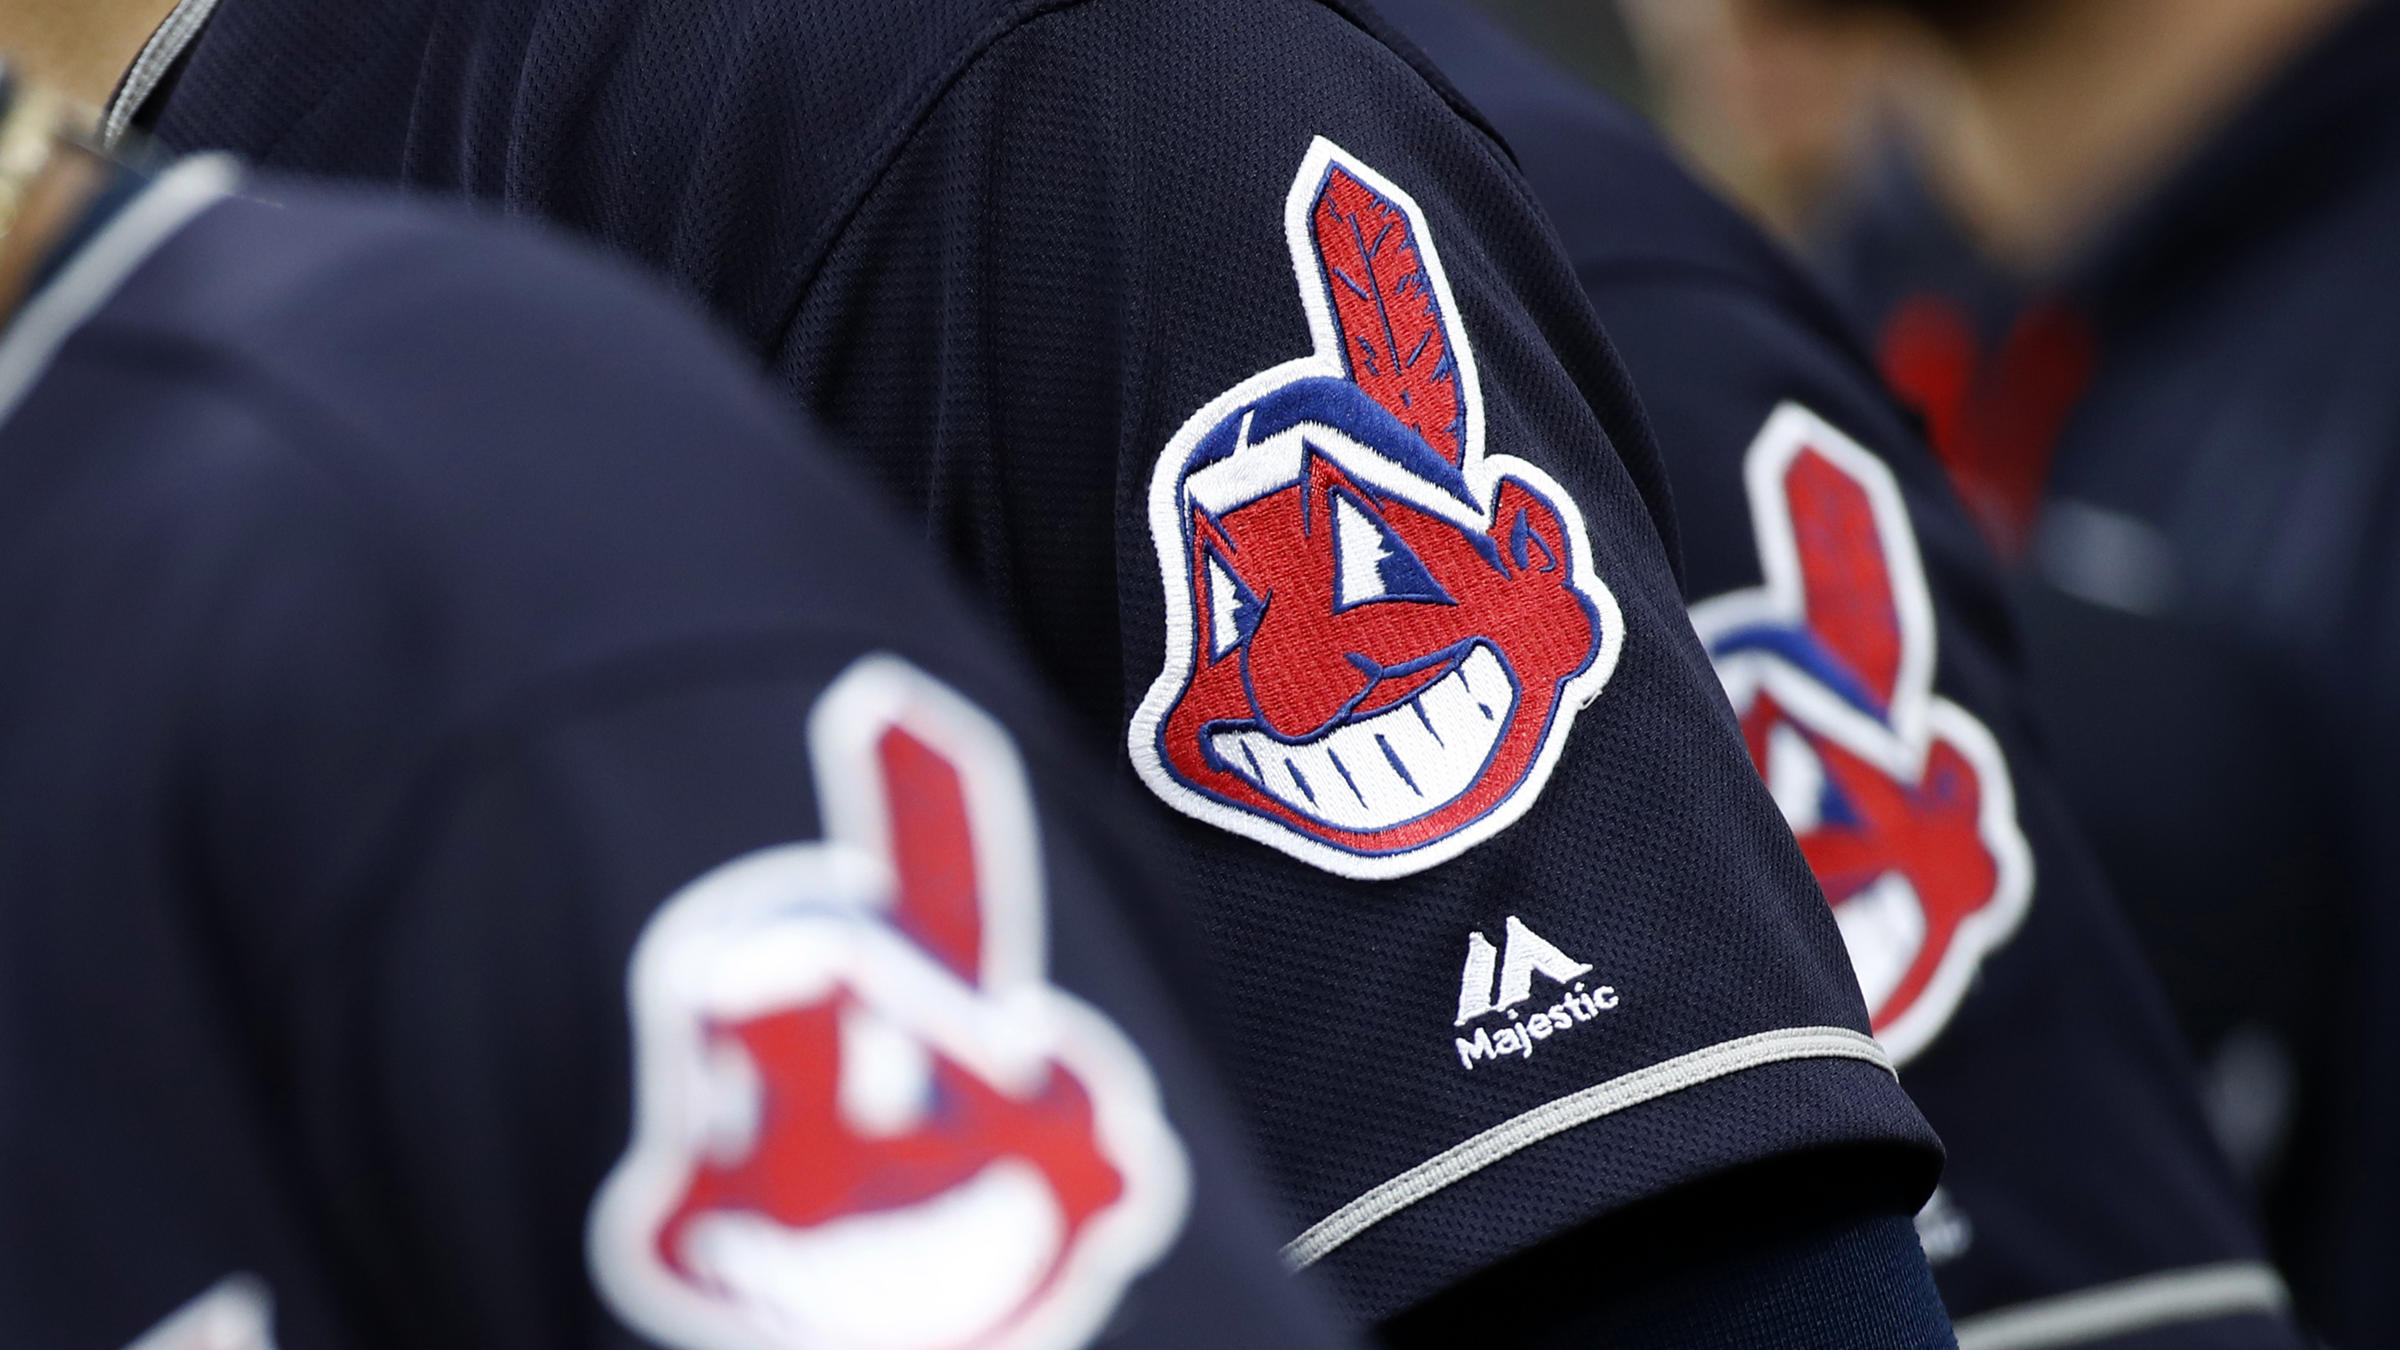 Cleveland indians will remove chief wahoo from uniforms in 2019 the cleveland indians have agreed to remove the chief wahoo logo which for decades has biocorpaavc Choice Image